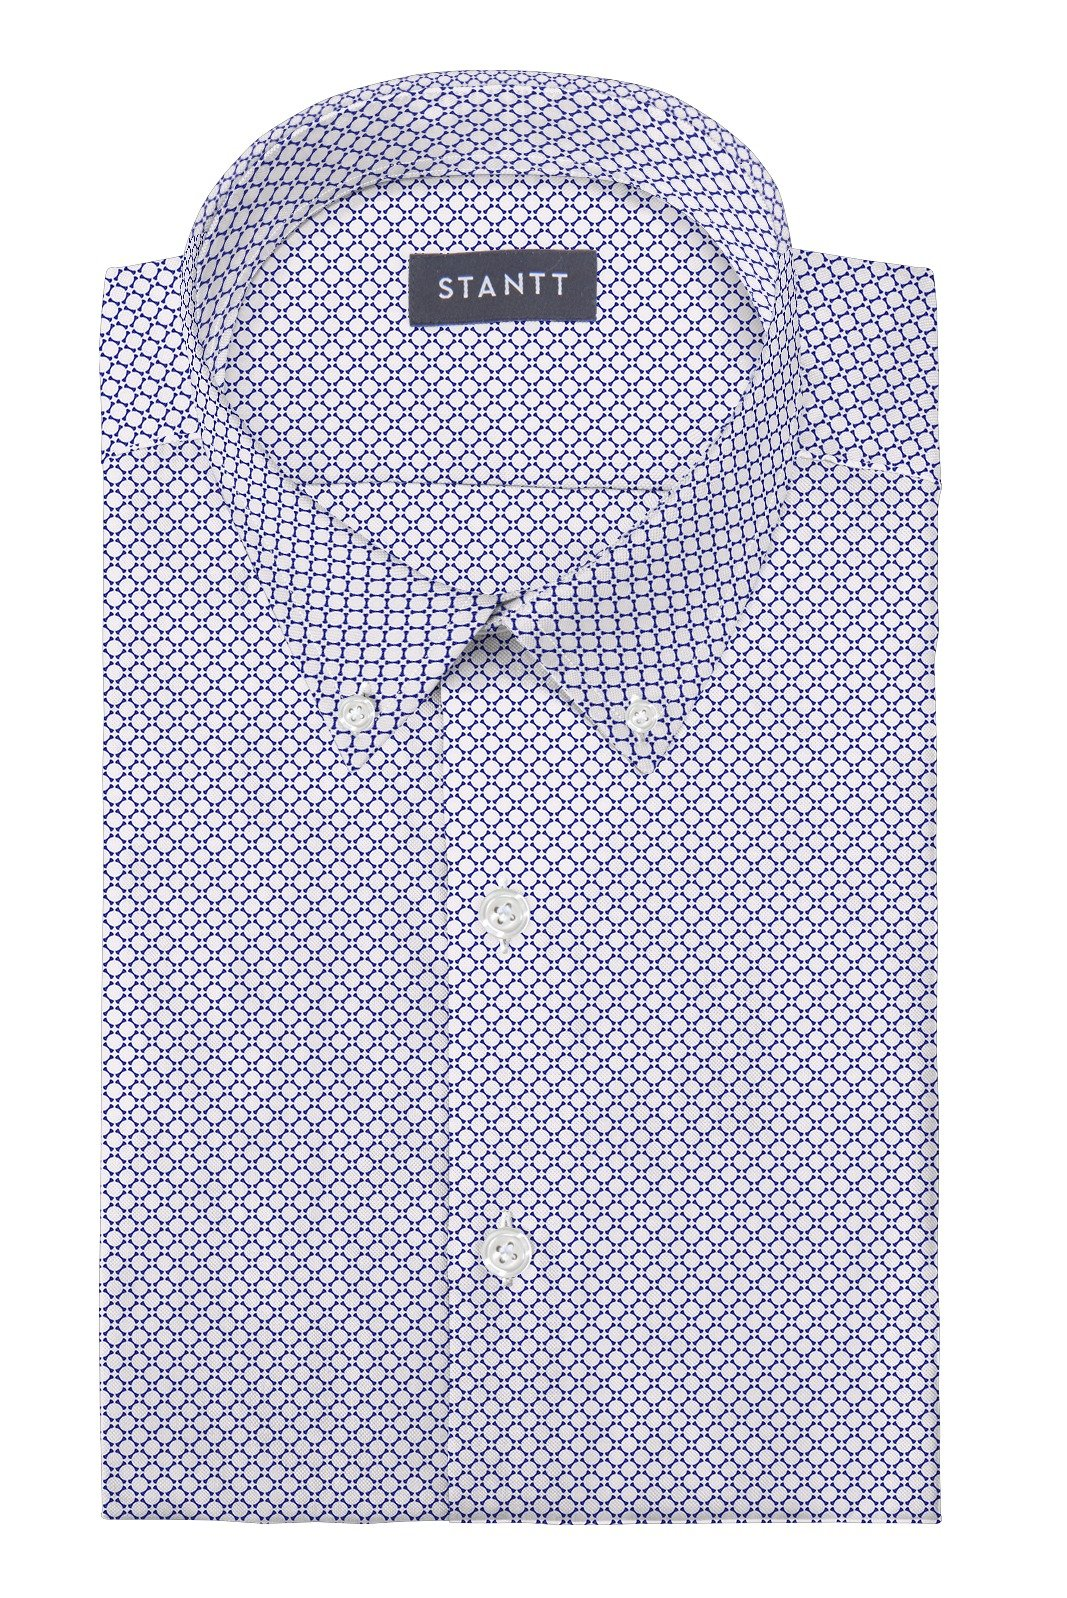 White and Blue Circle Print: Button-Down Collar, Barrel Cuff